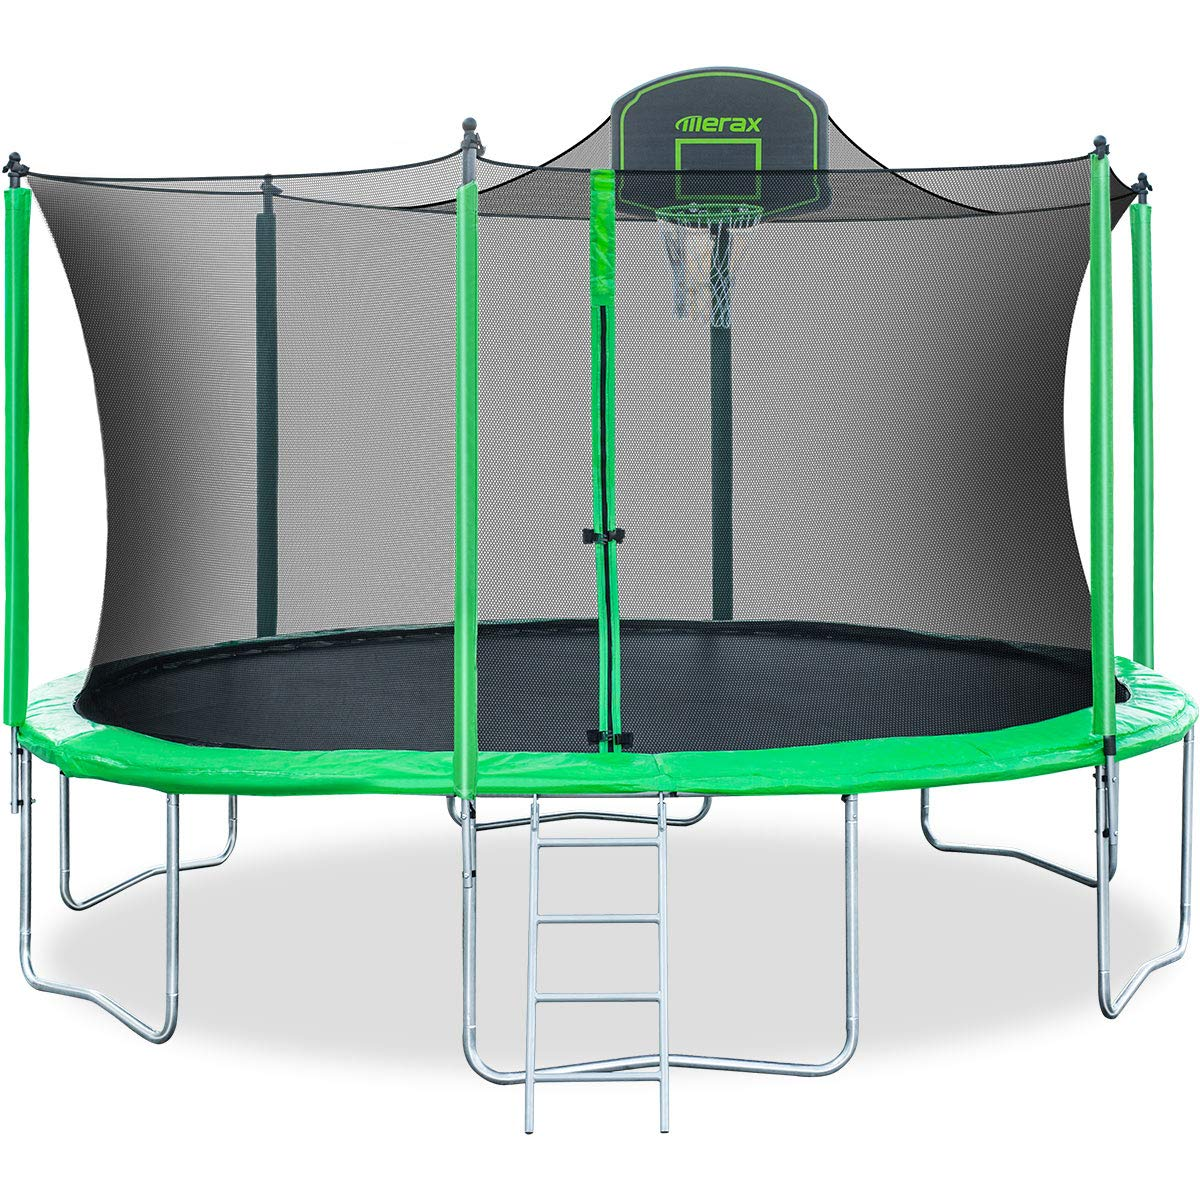 Merax 14FT 12FT Trampoline with Safety Enclosure Net, Basketball Hoop and Ladder - BV Certificated – Basketball Trampoline (12 Feet)